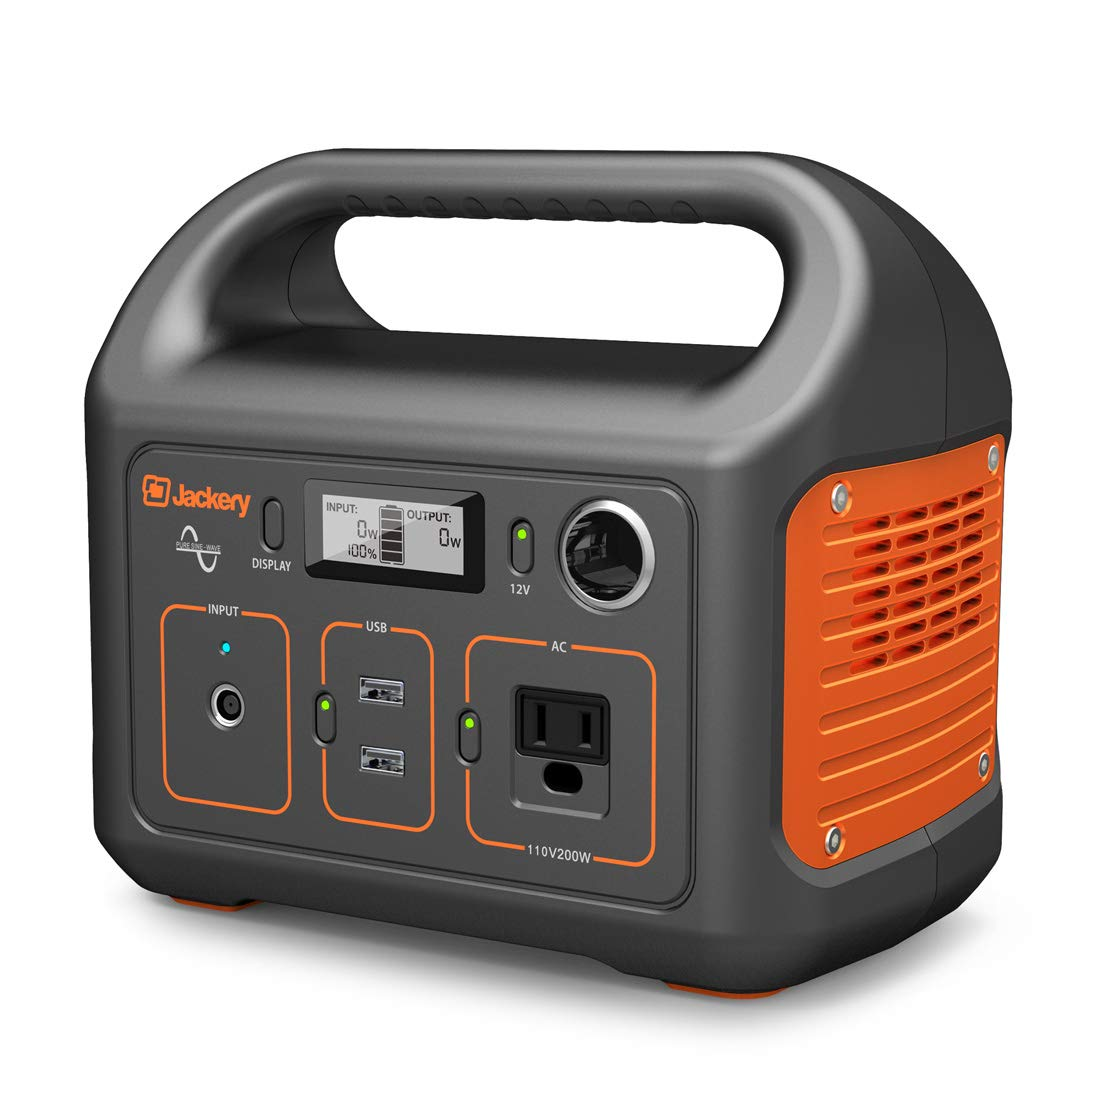 Jackery Portable Power Station Explorer 240, 240Wh Emergency Backup Lithium Battery, 110V/200W Pure Sinewave